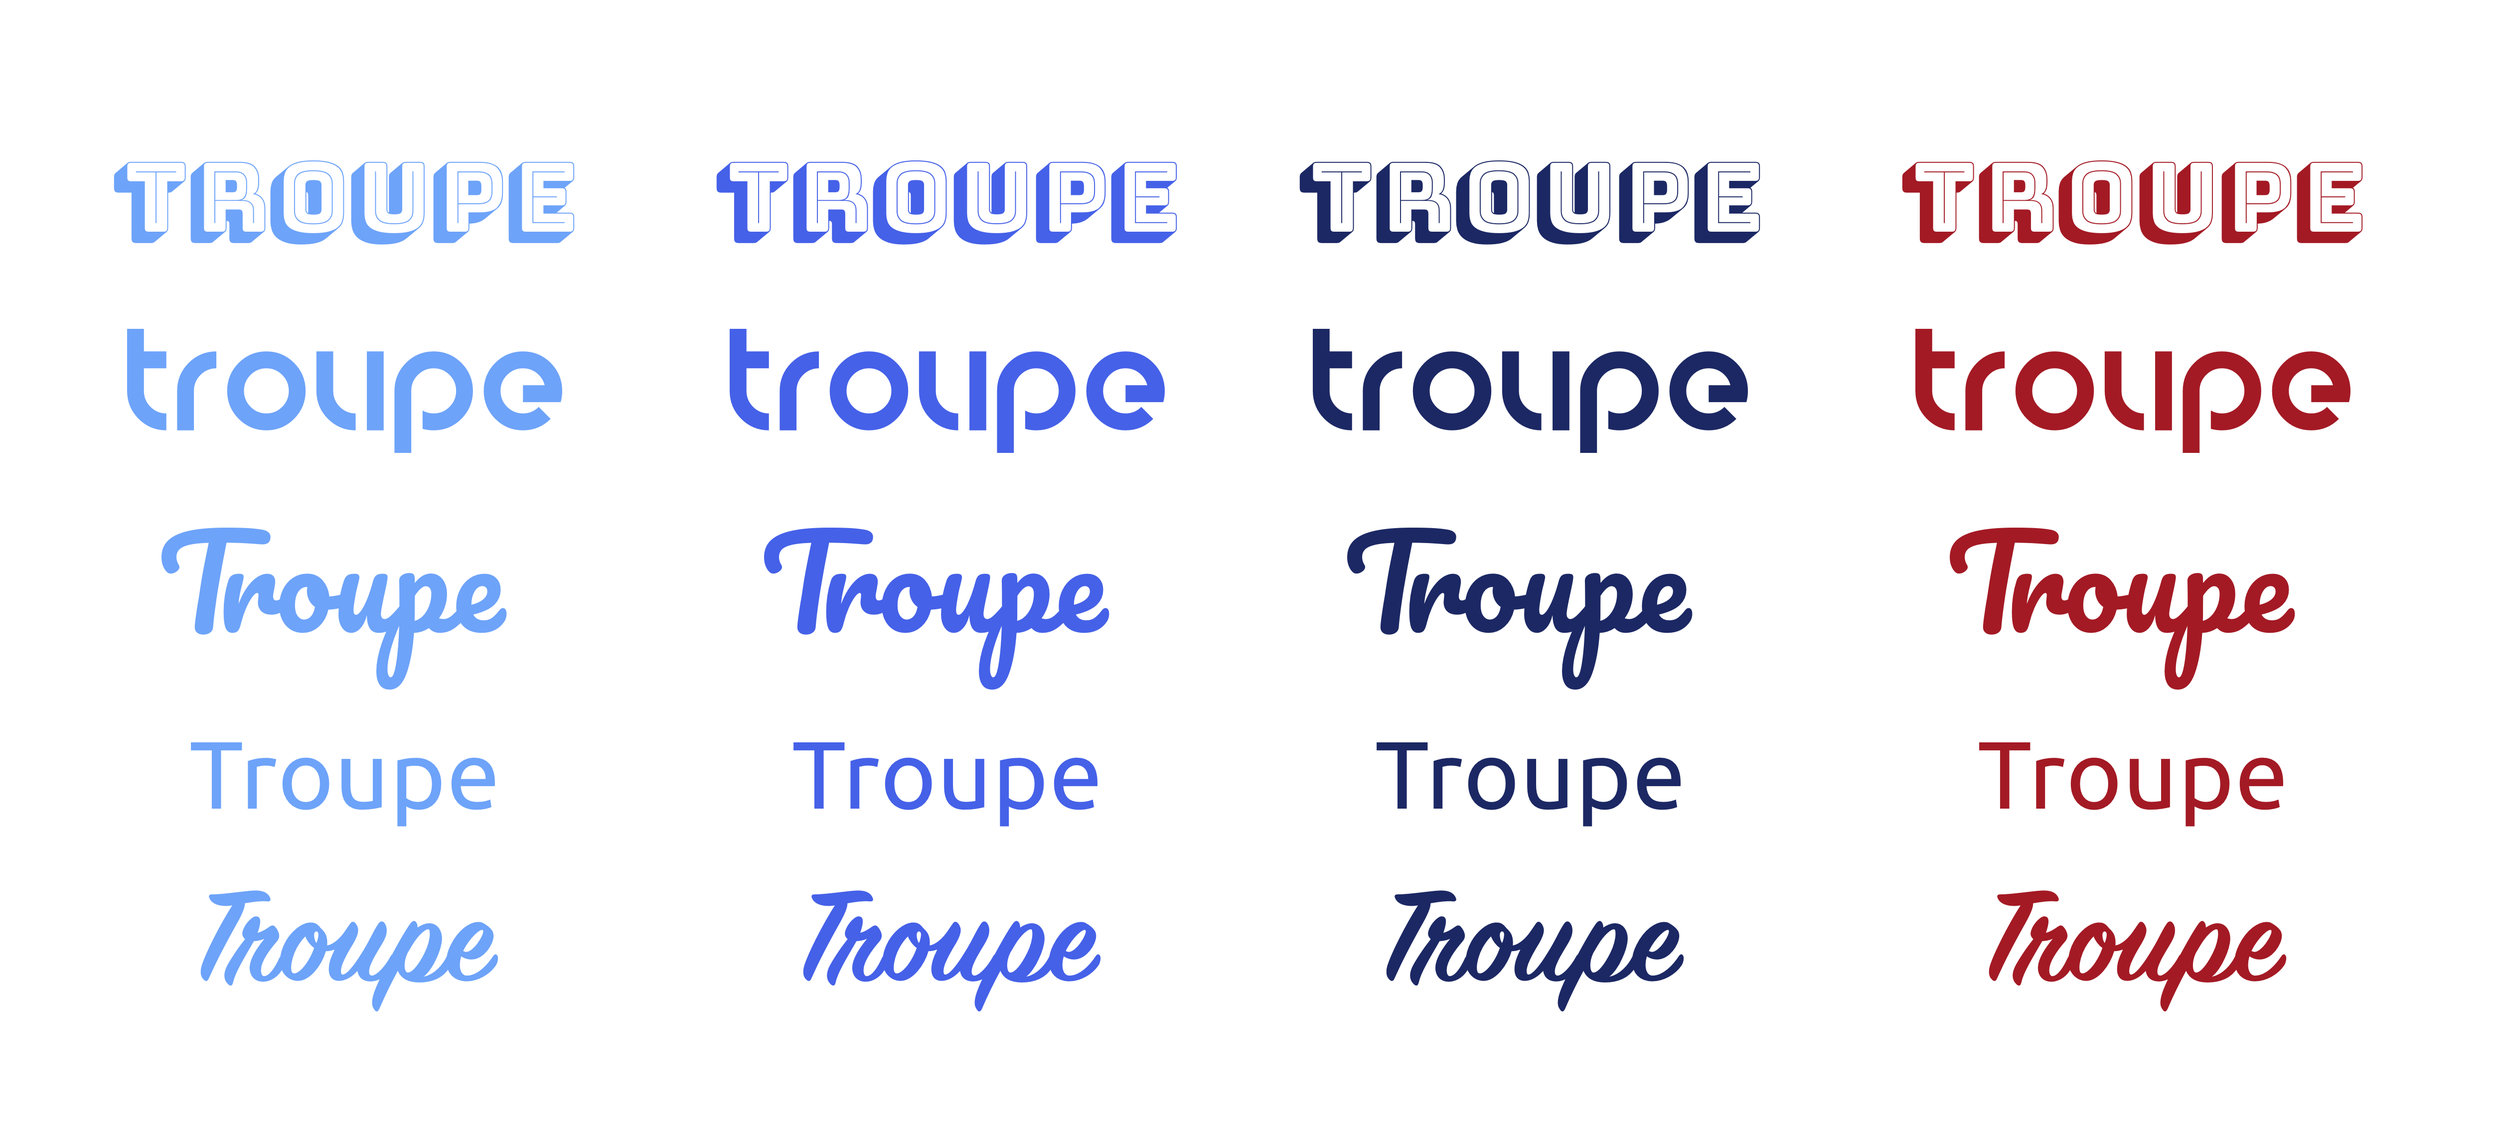 Wordmark exploration for the Troupe brand